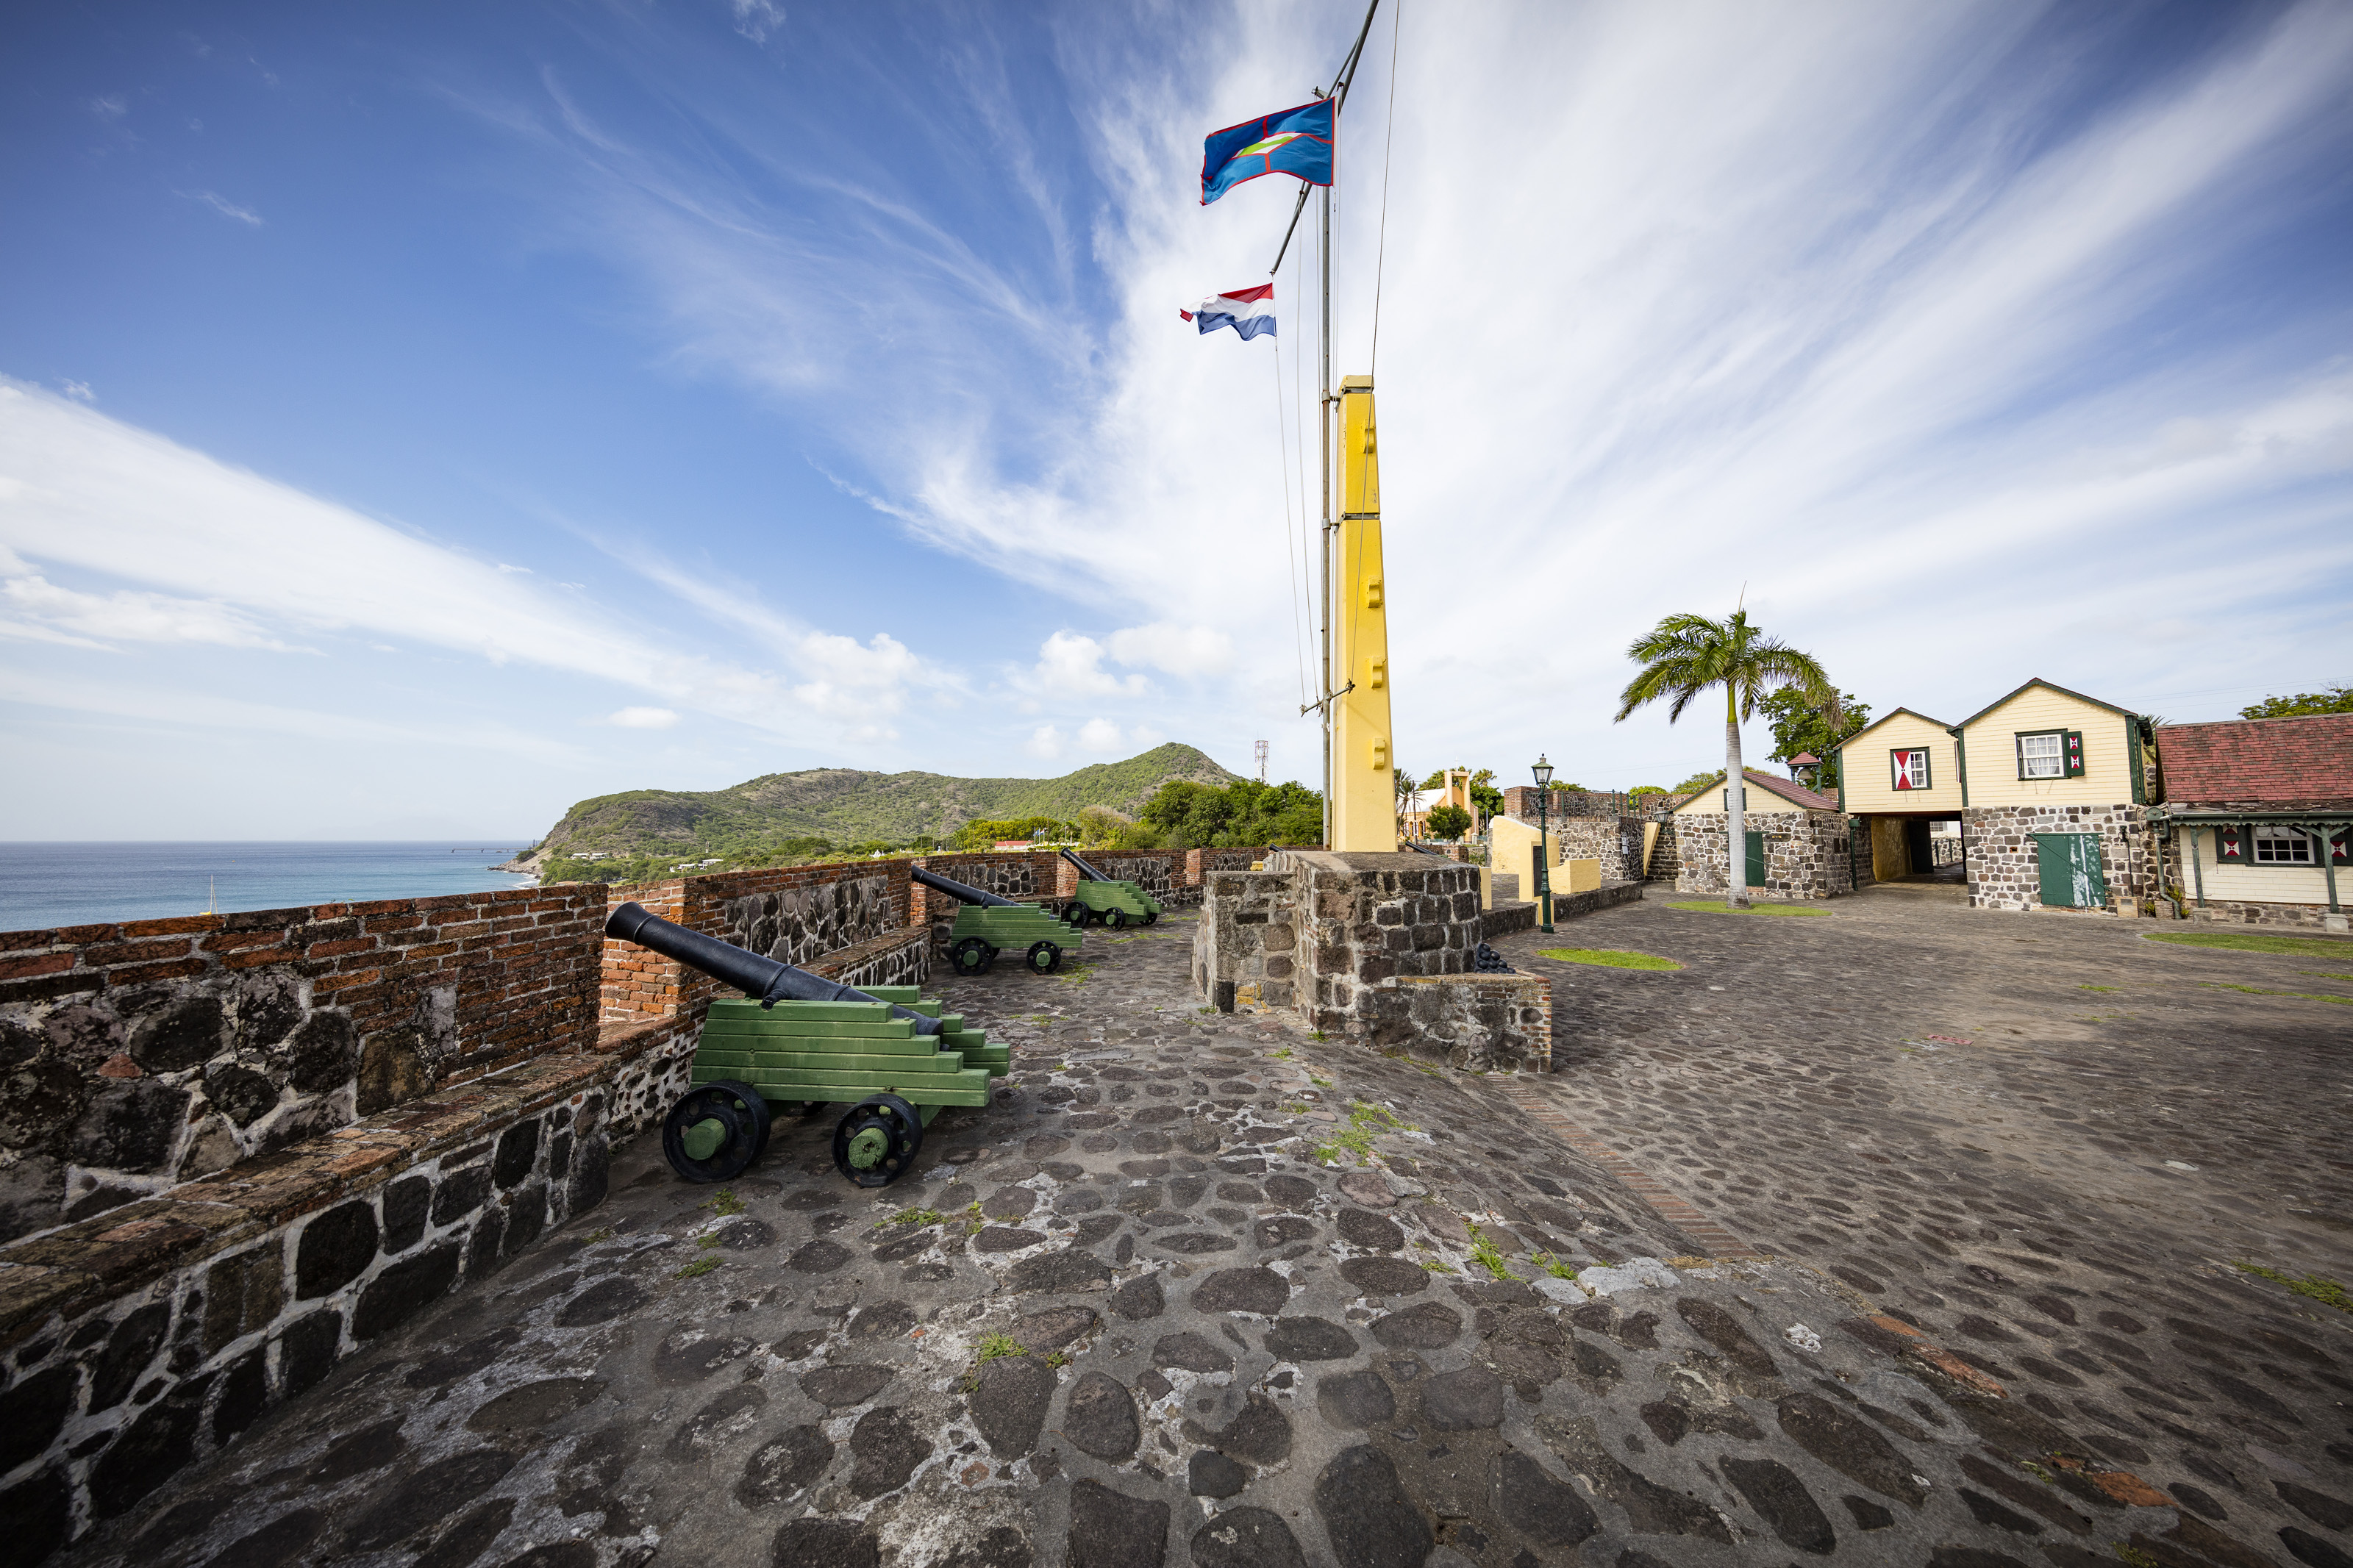 Statia_Fort_Oranje_Cees_Timmers_2016_4379